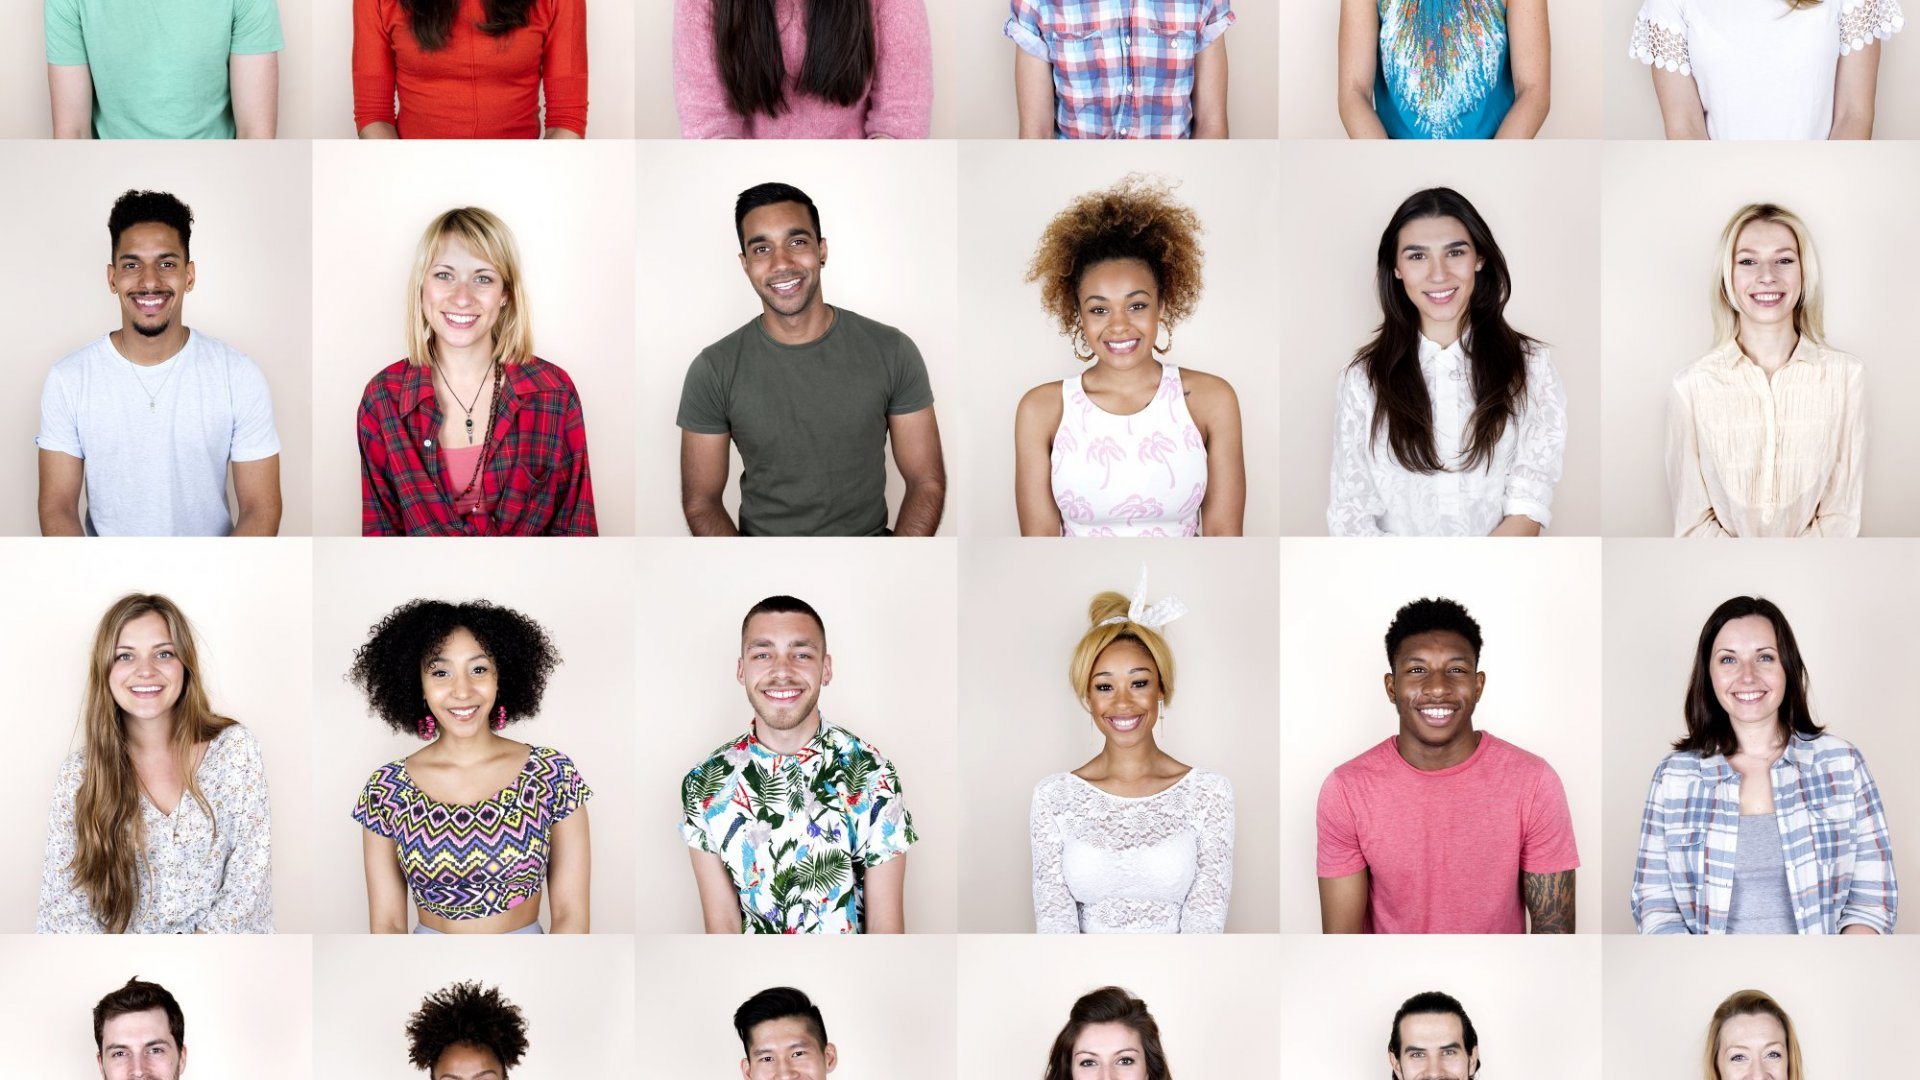 How Women And Men Can Work Together To Create Equality